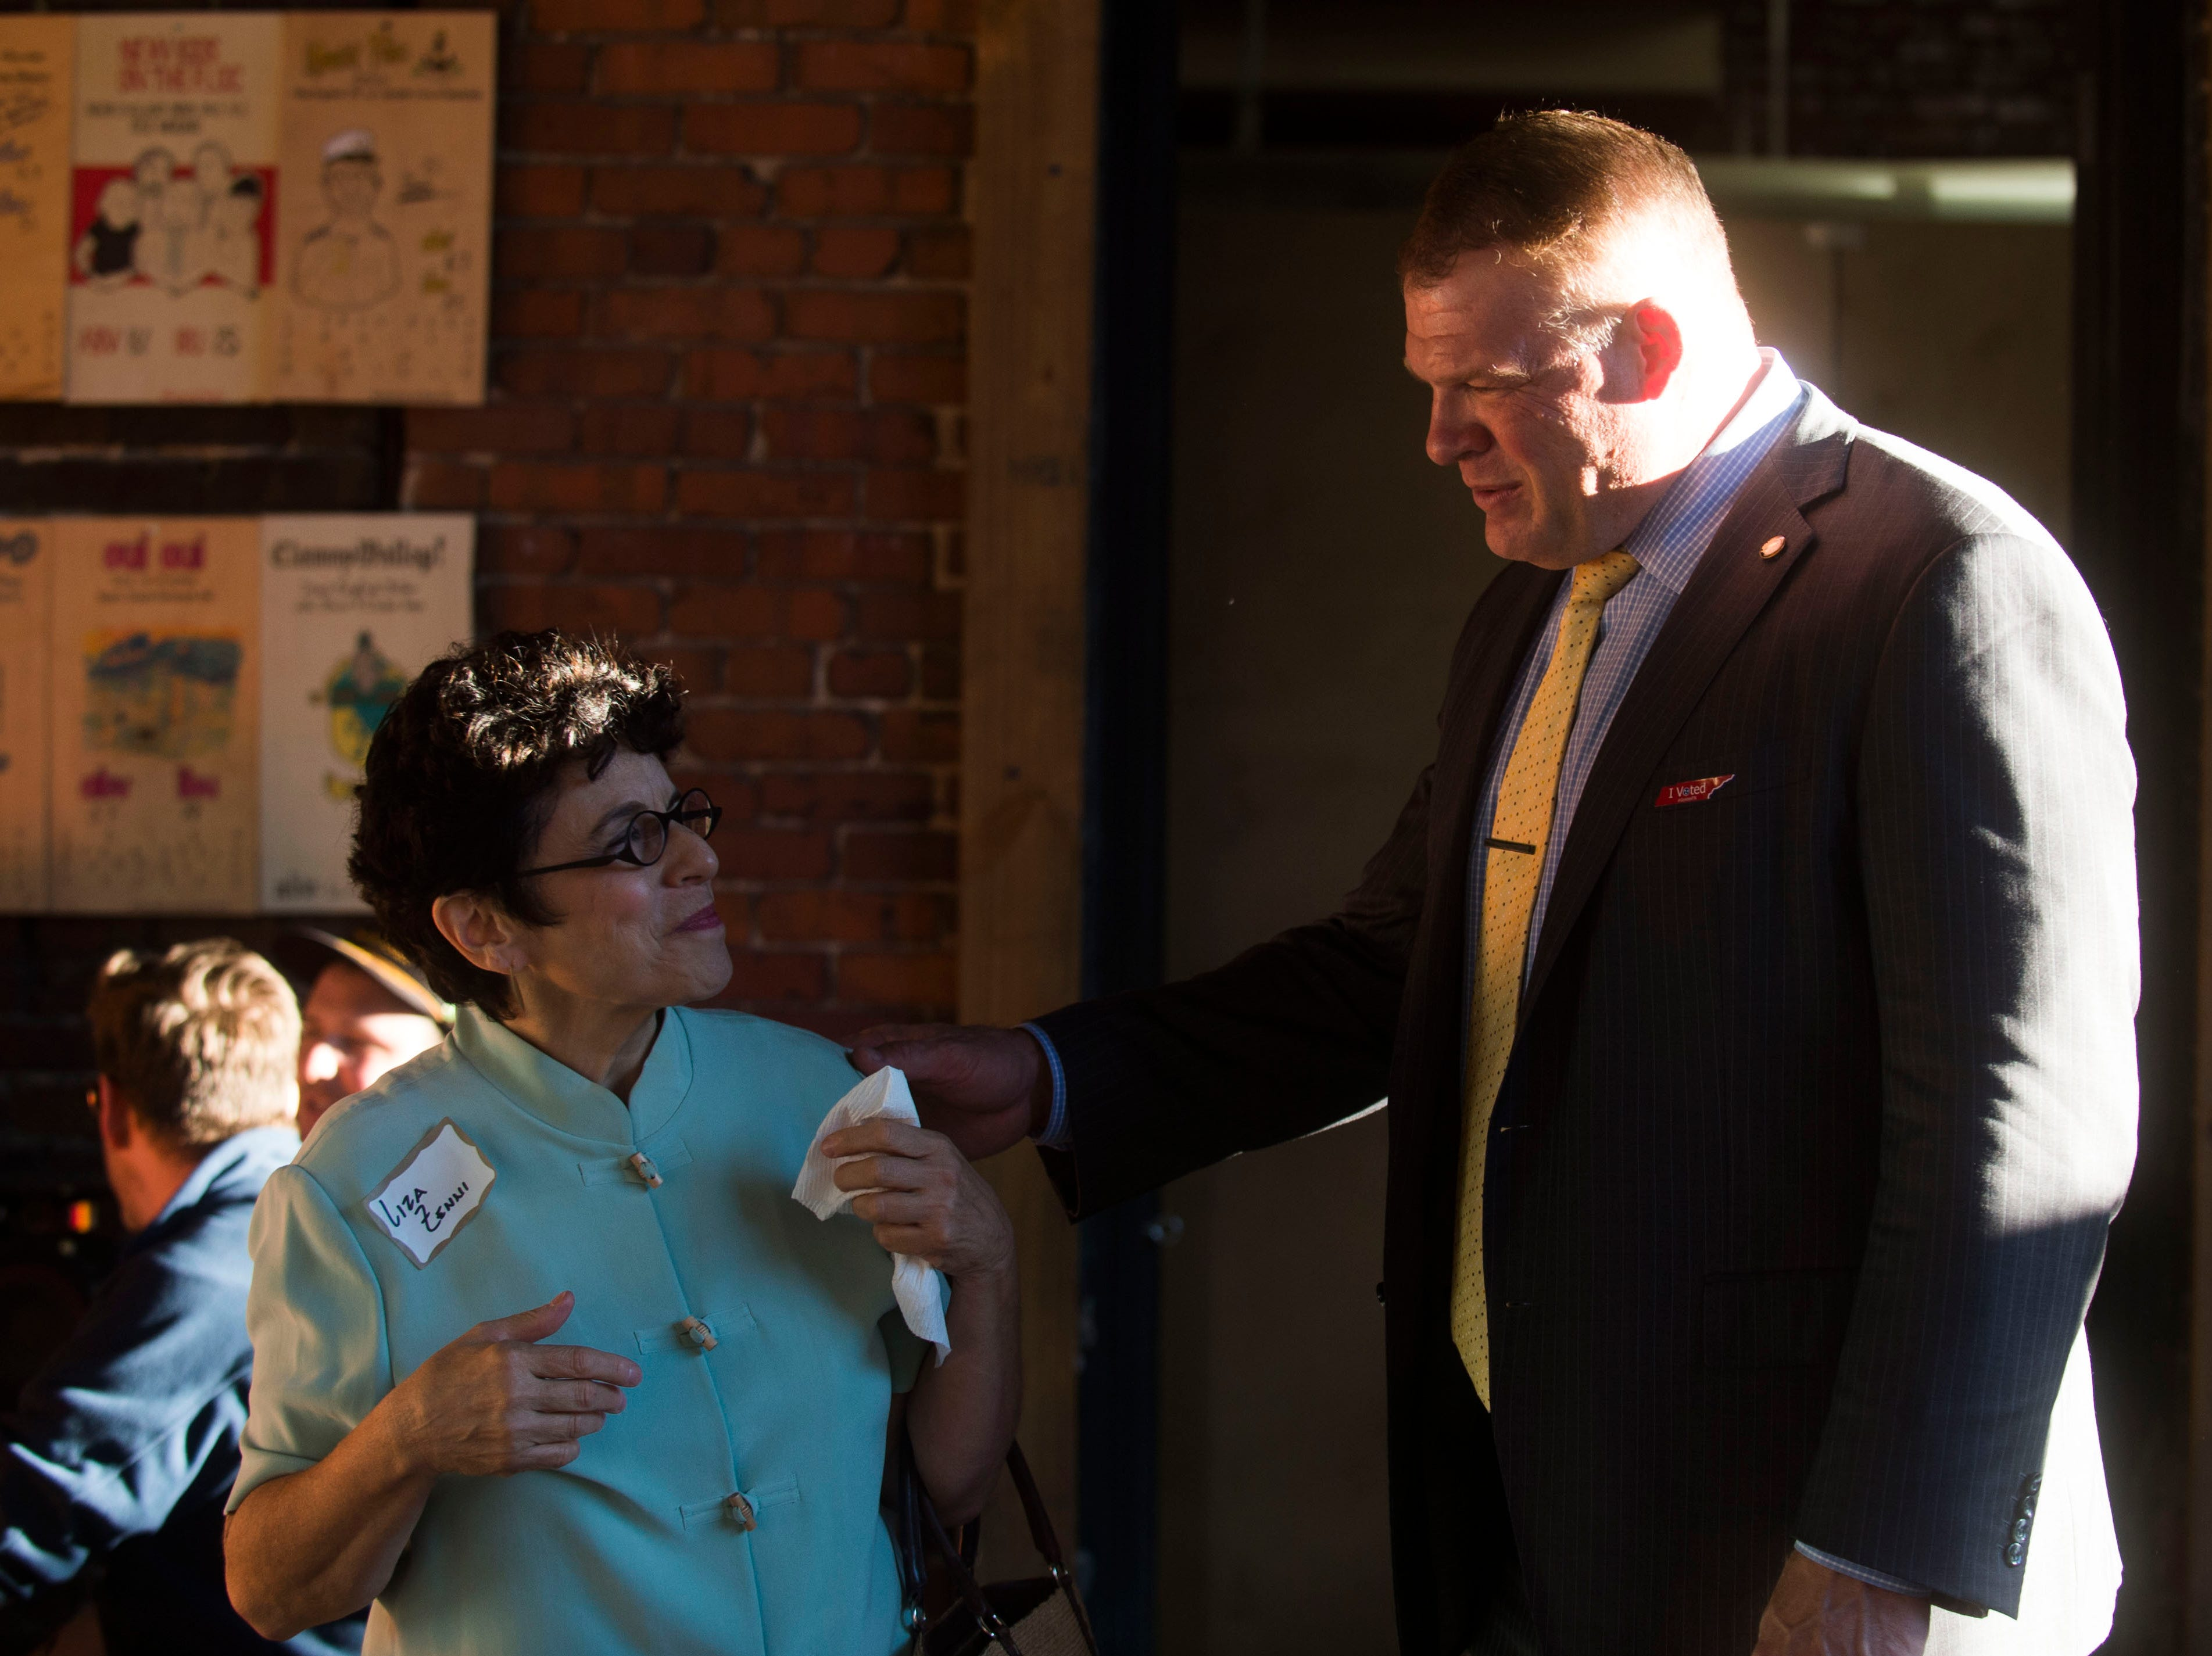 Knox County Mayor Glenn Jacobs speaks with an attendee at the News Sentinel's second News & Brews event at Pretentious Beer Co. Thursday, Oct. 18, 2018. Knox County Mayor Glenn Jacobs participated in a Q&A session lead by reporter Tyler Whetstone.